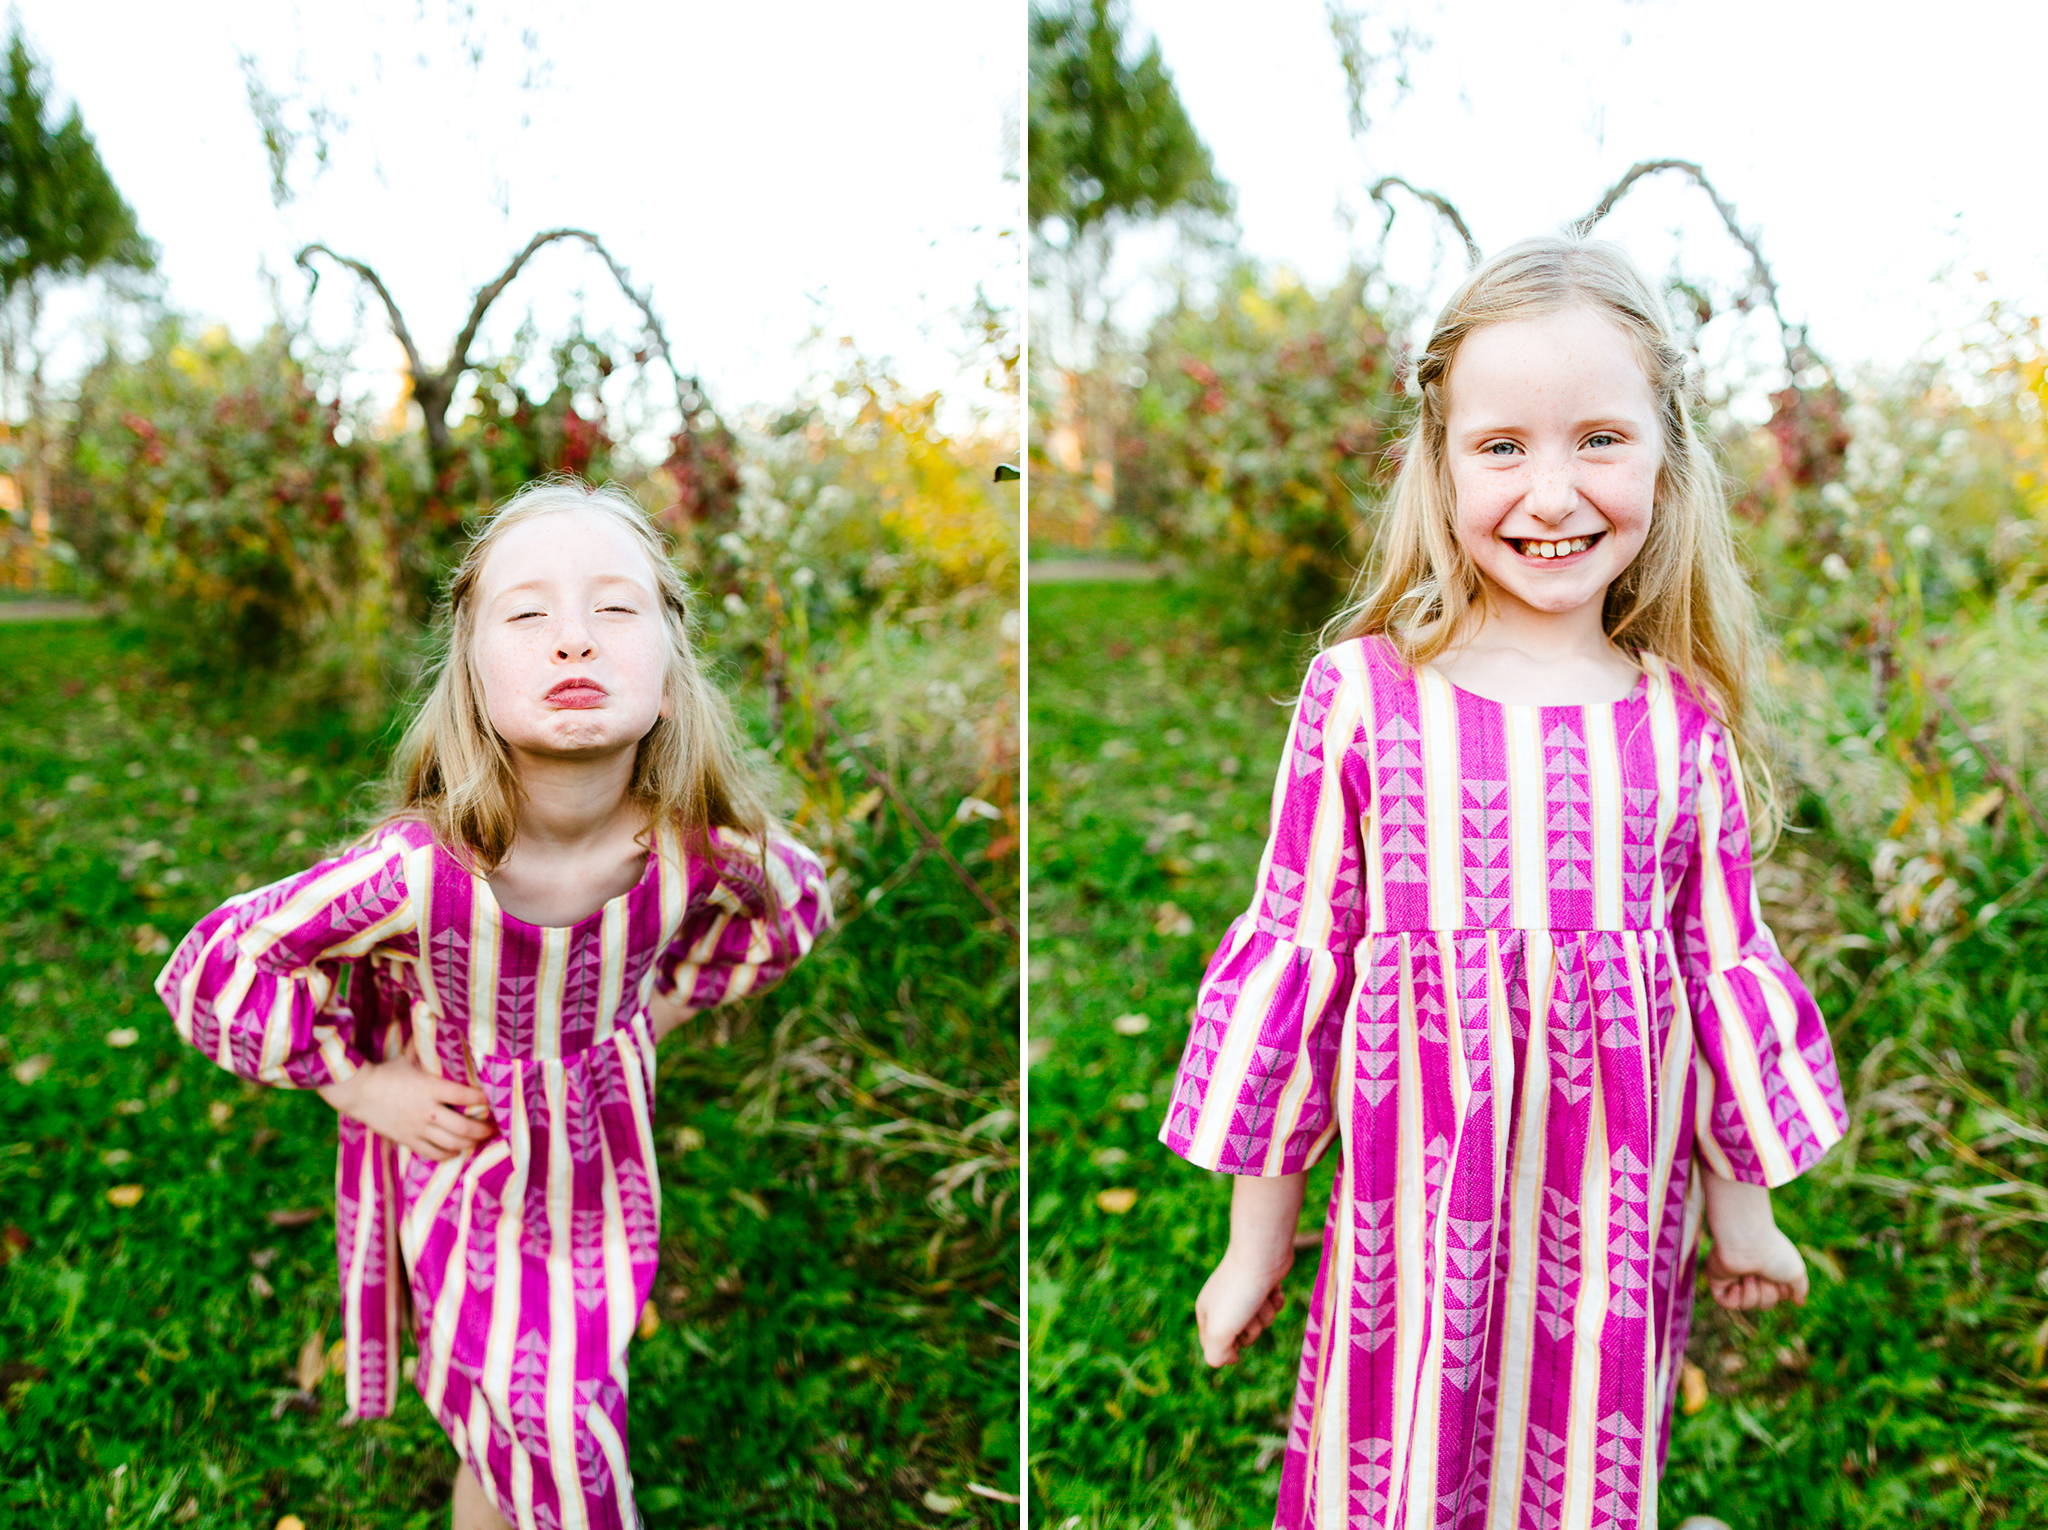 Woodinville Family Photography Mini Sessions At An Apple Orchard